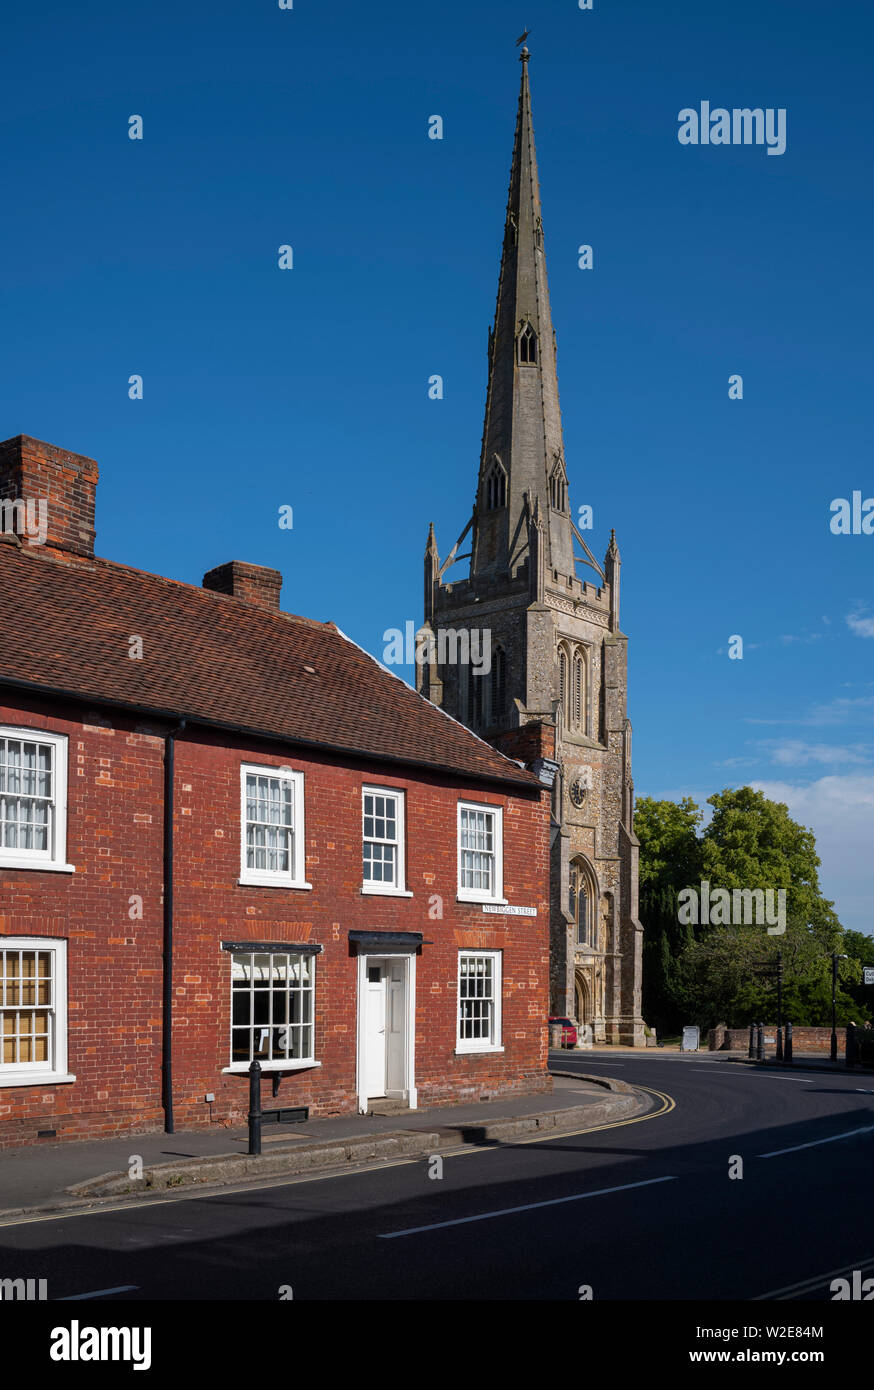 Thaxted Church Thaxted Essex England July 2019 - Stock Image